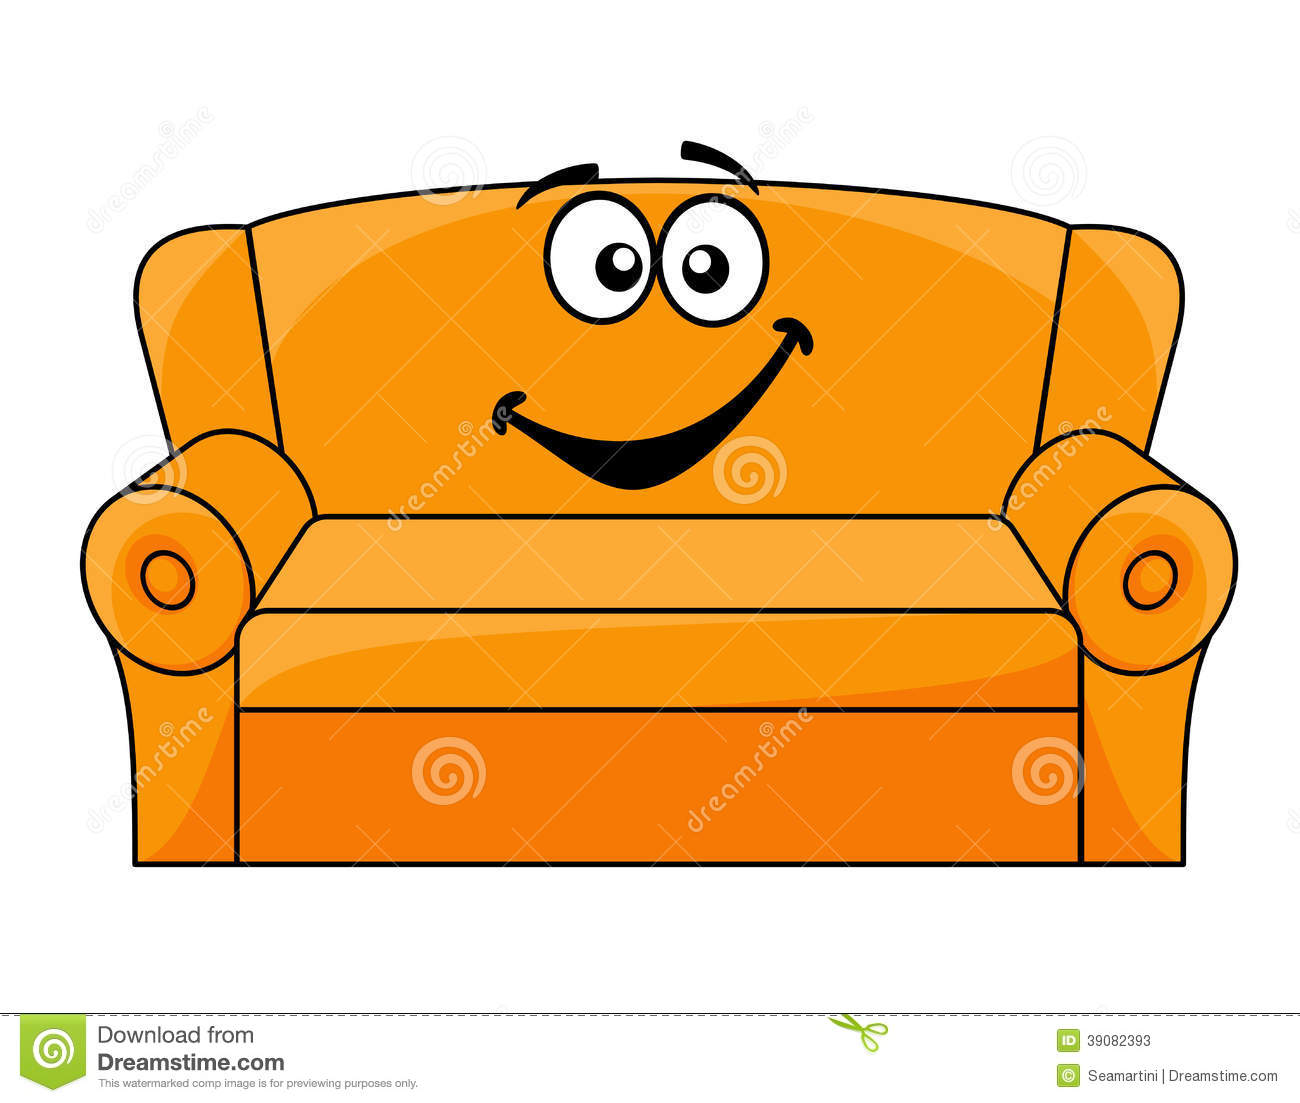 Cartoon Upholstered Couch Stock Vector. Illustration Of